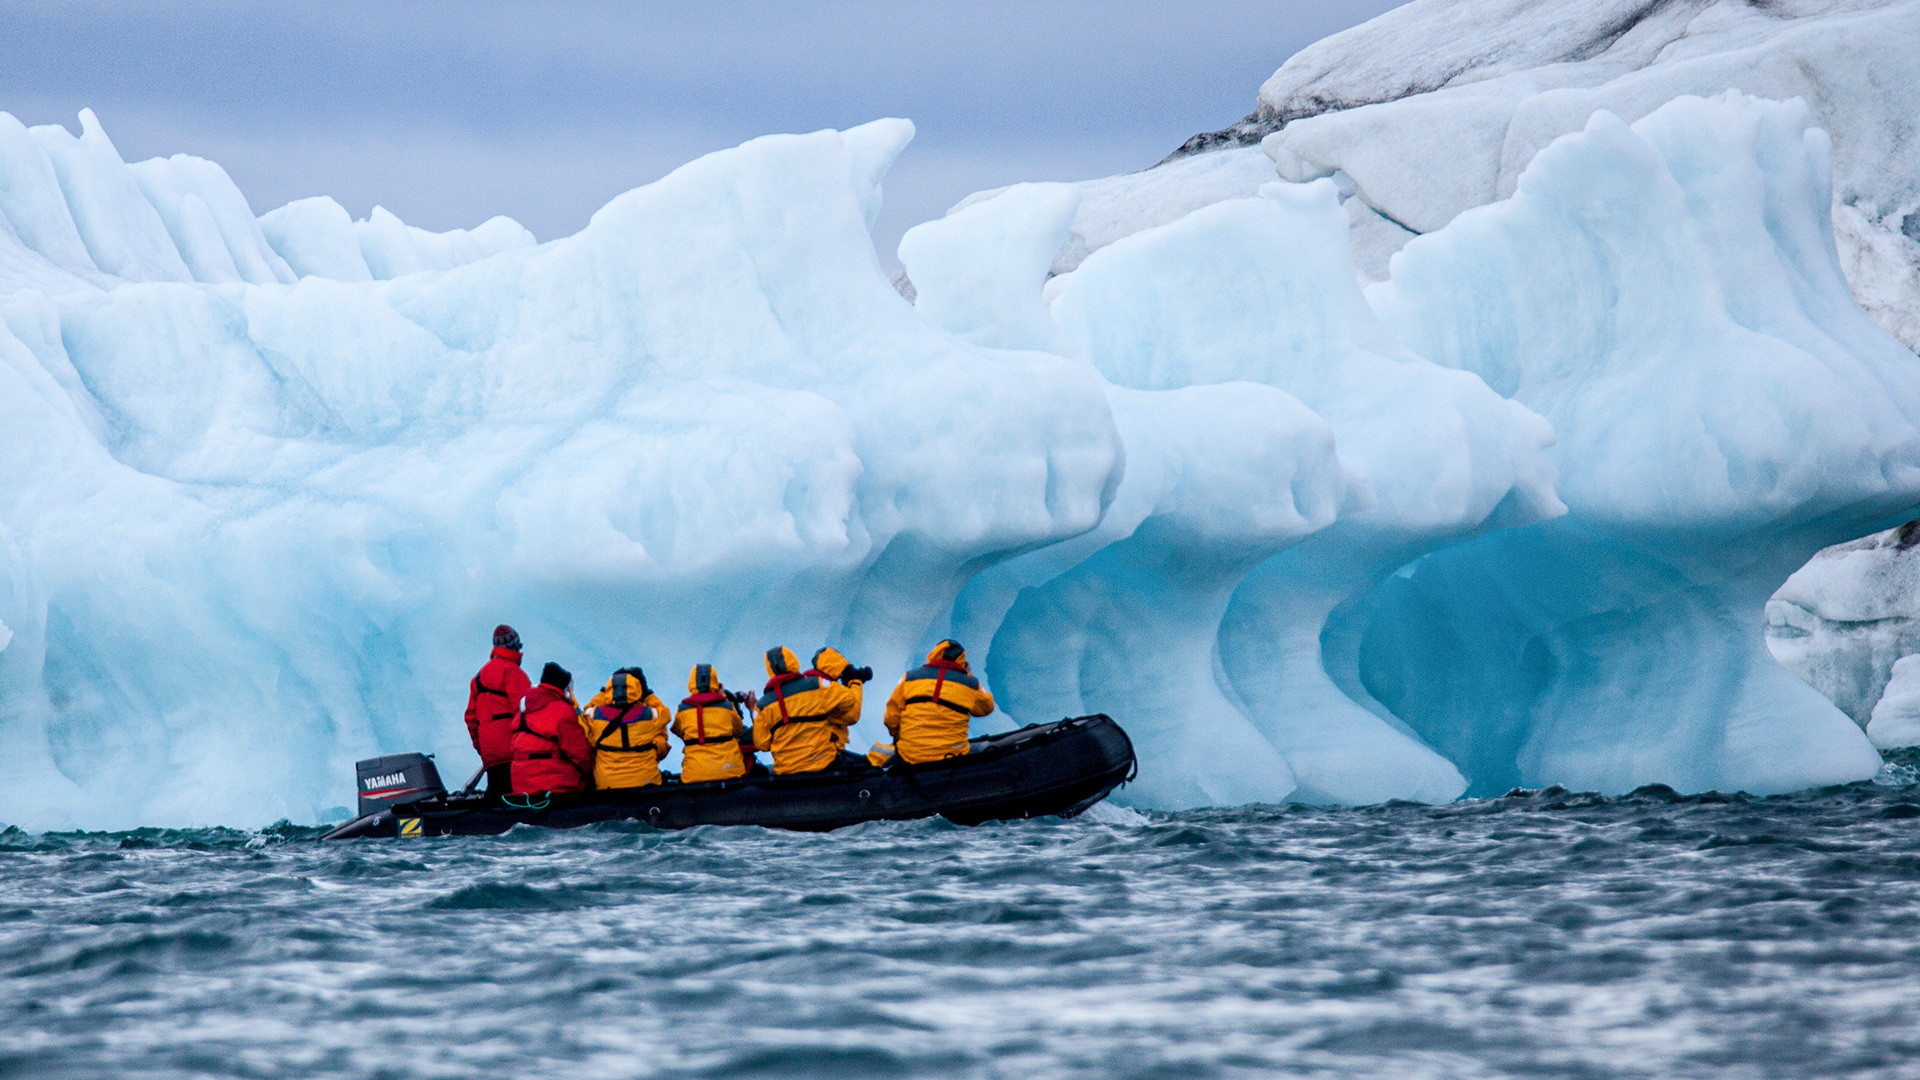 'Zodiak' with tourists in front of an iceberg in the Arctic Ocean. Russian Arctic.